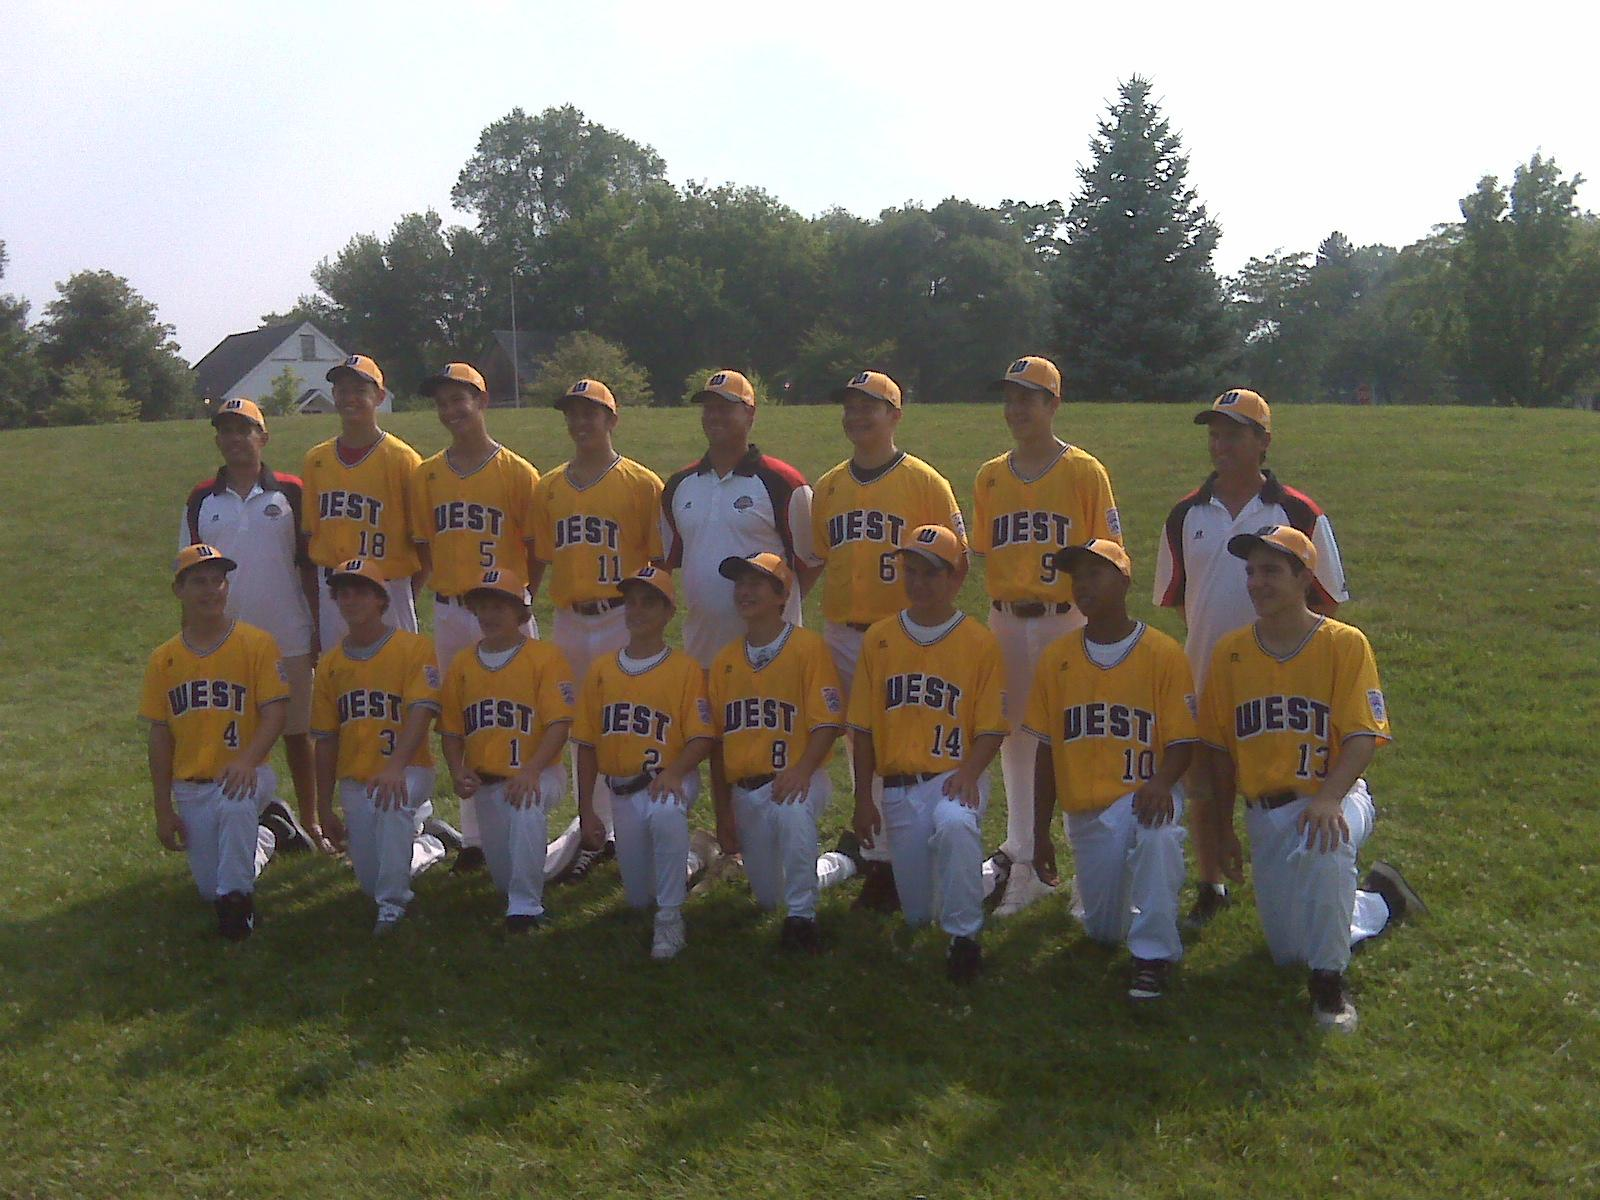 2009 Jrs World Series